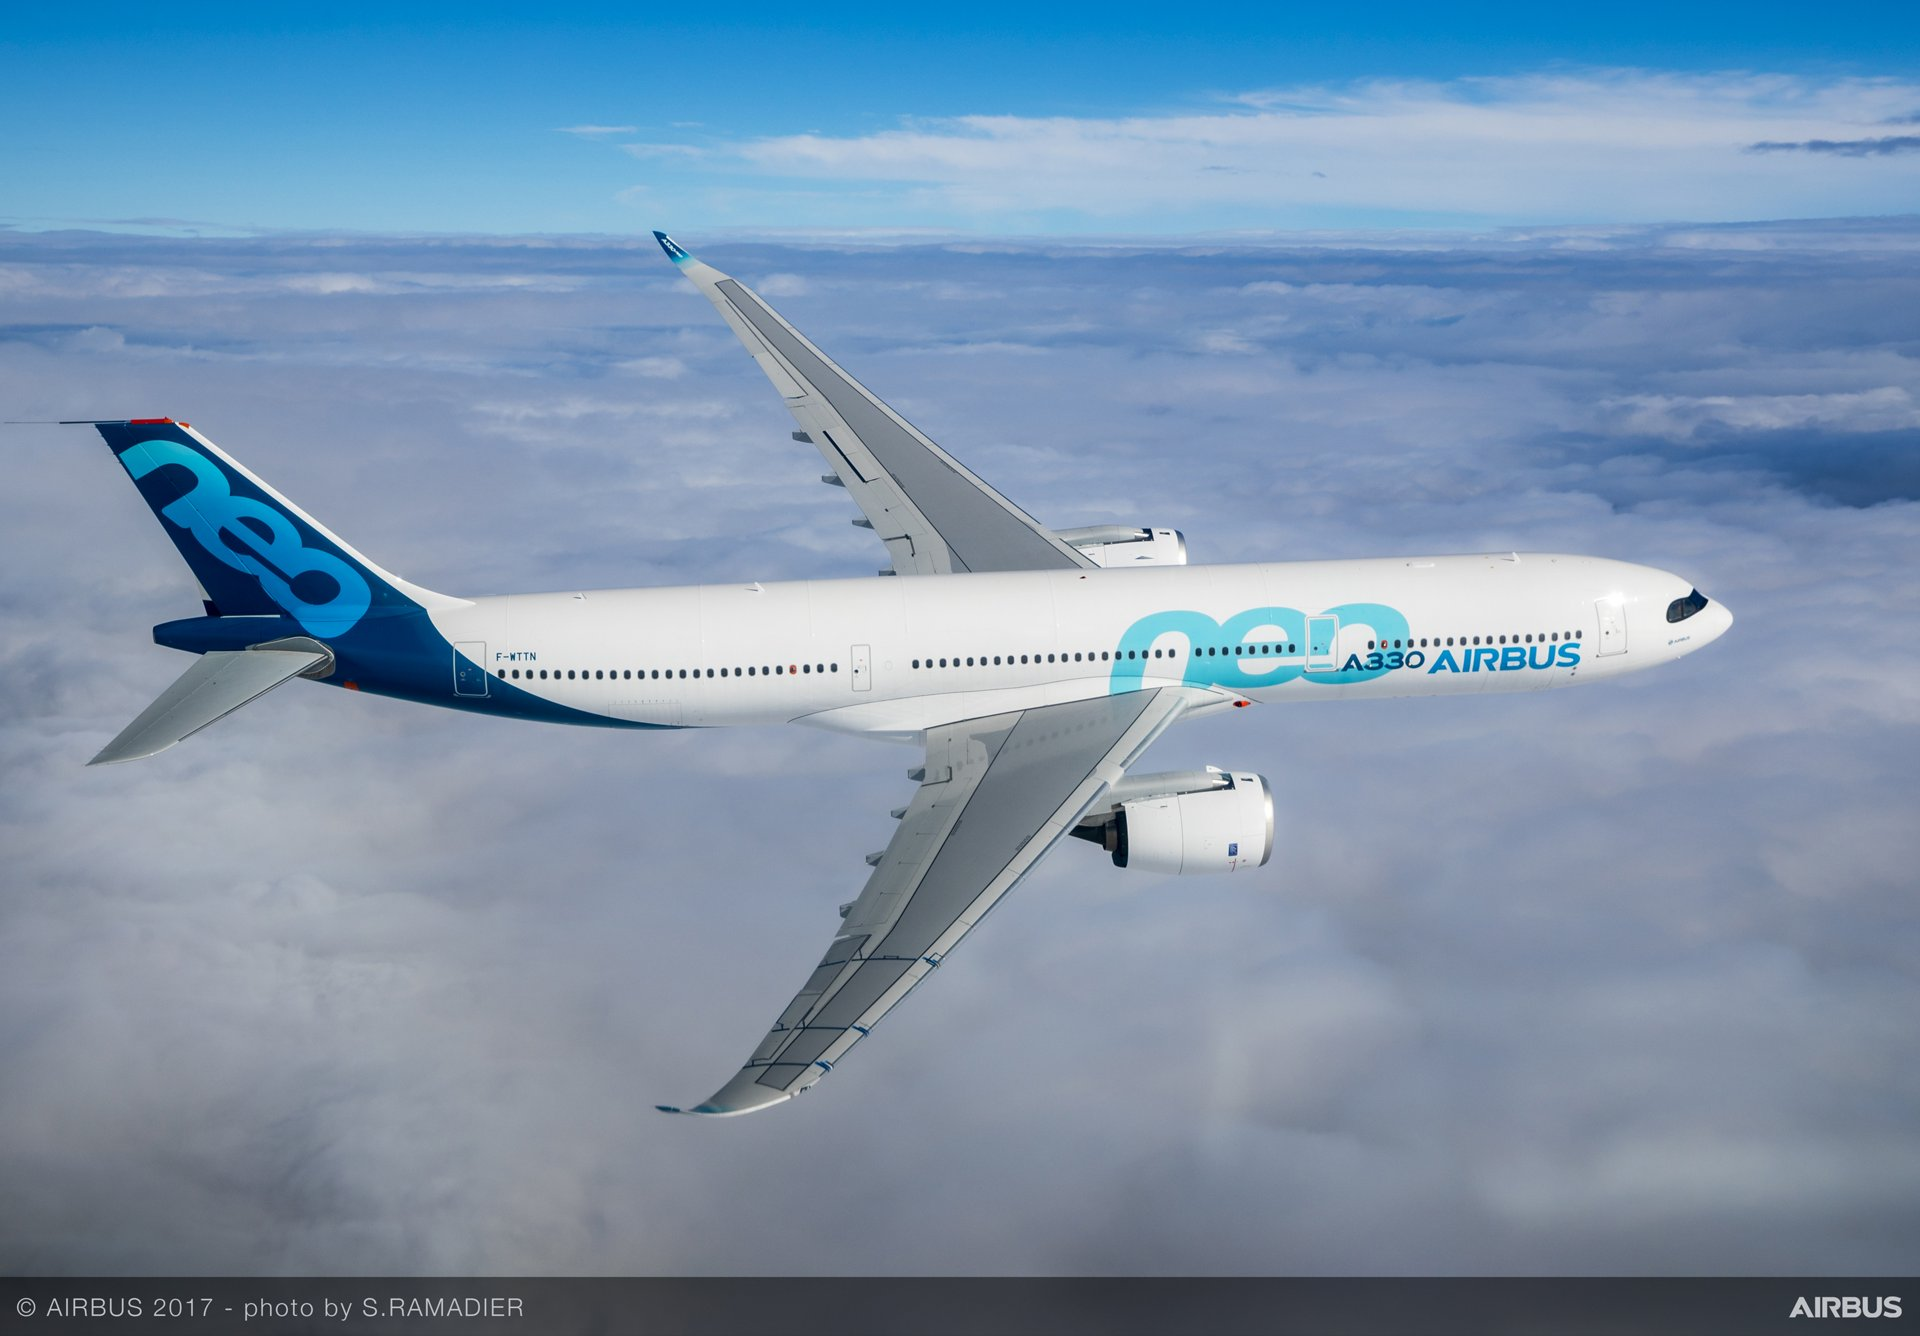 A330neo First Flight in flight 3